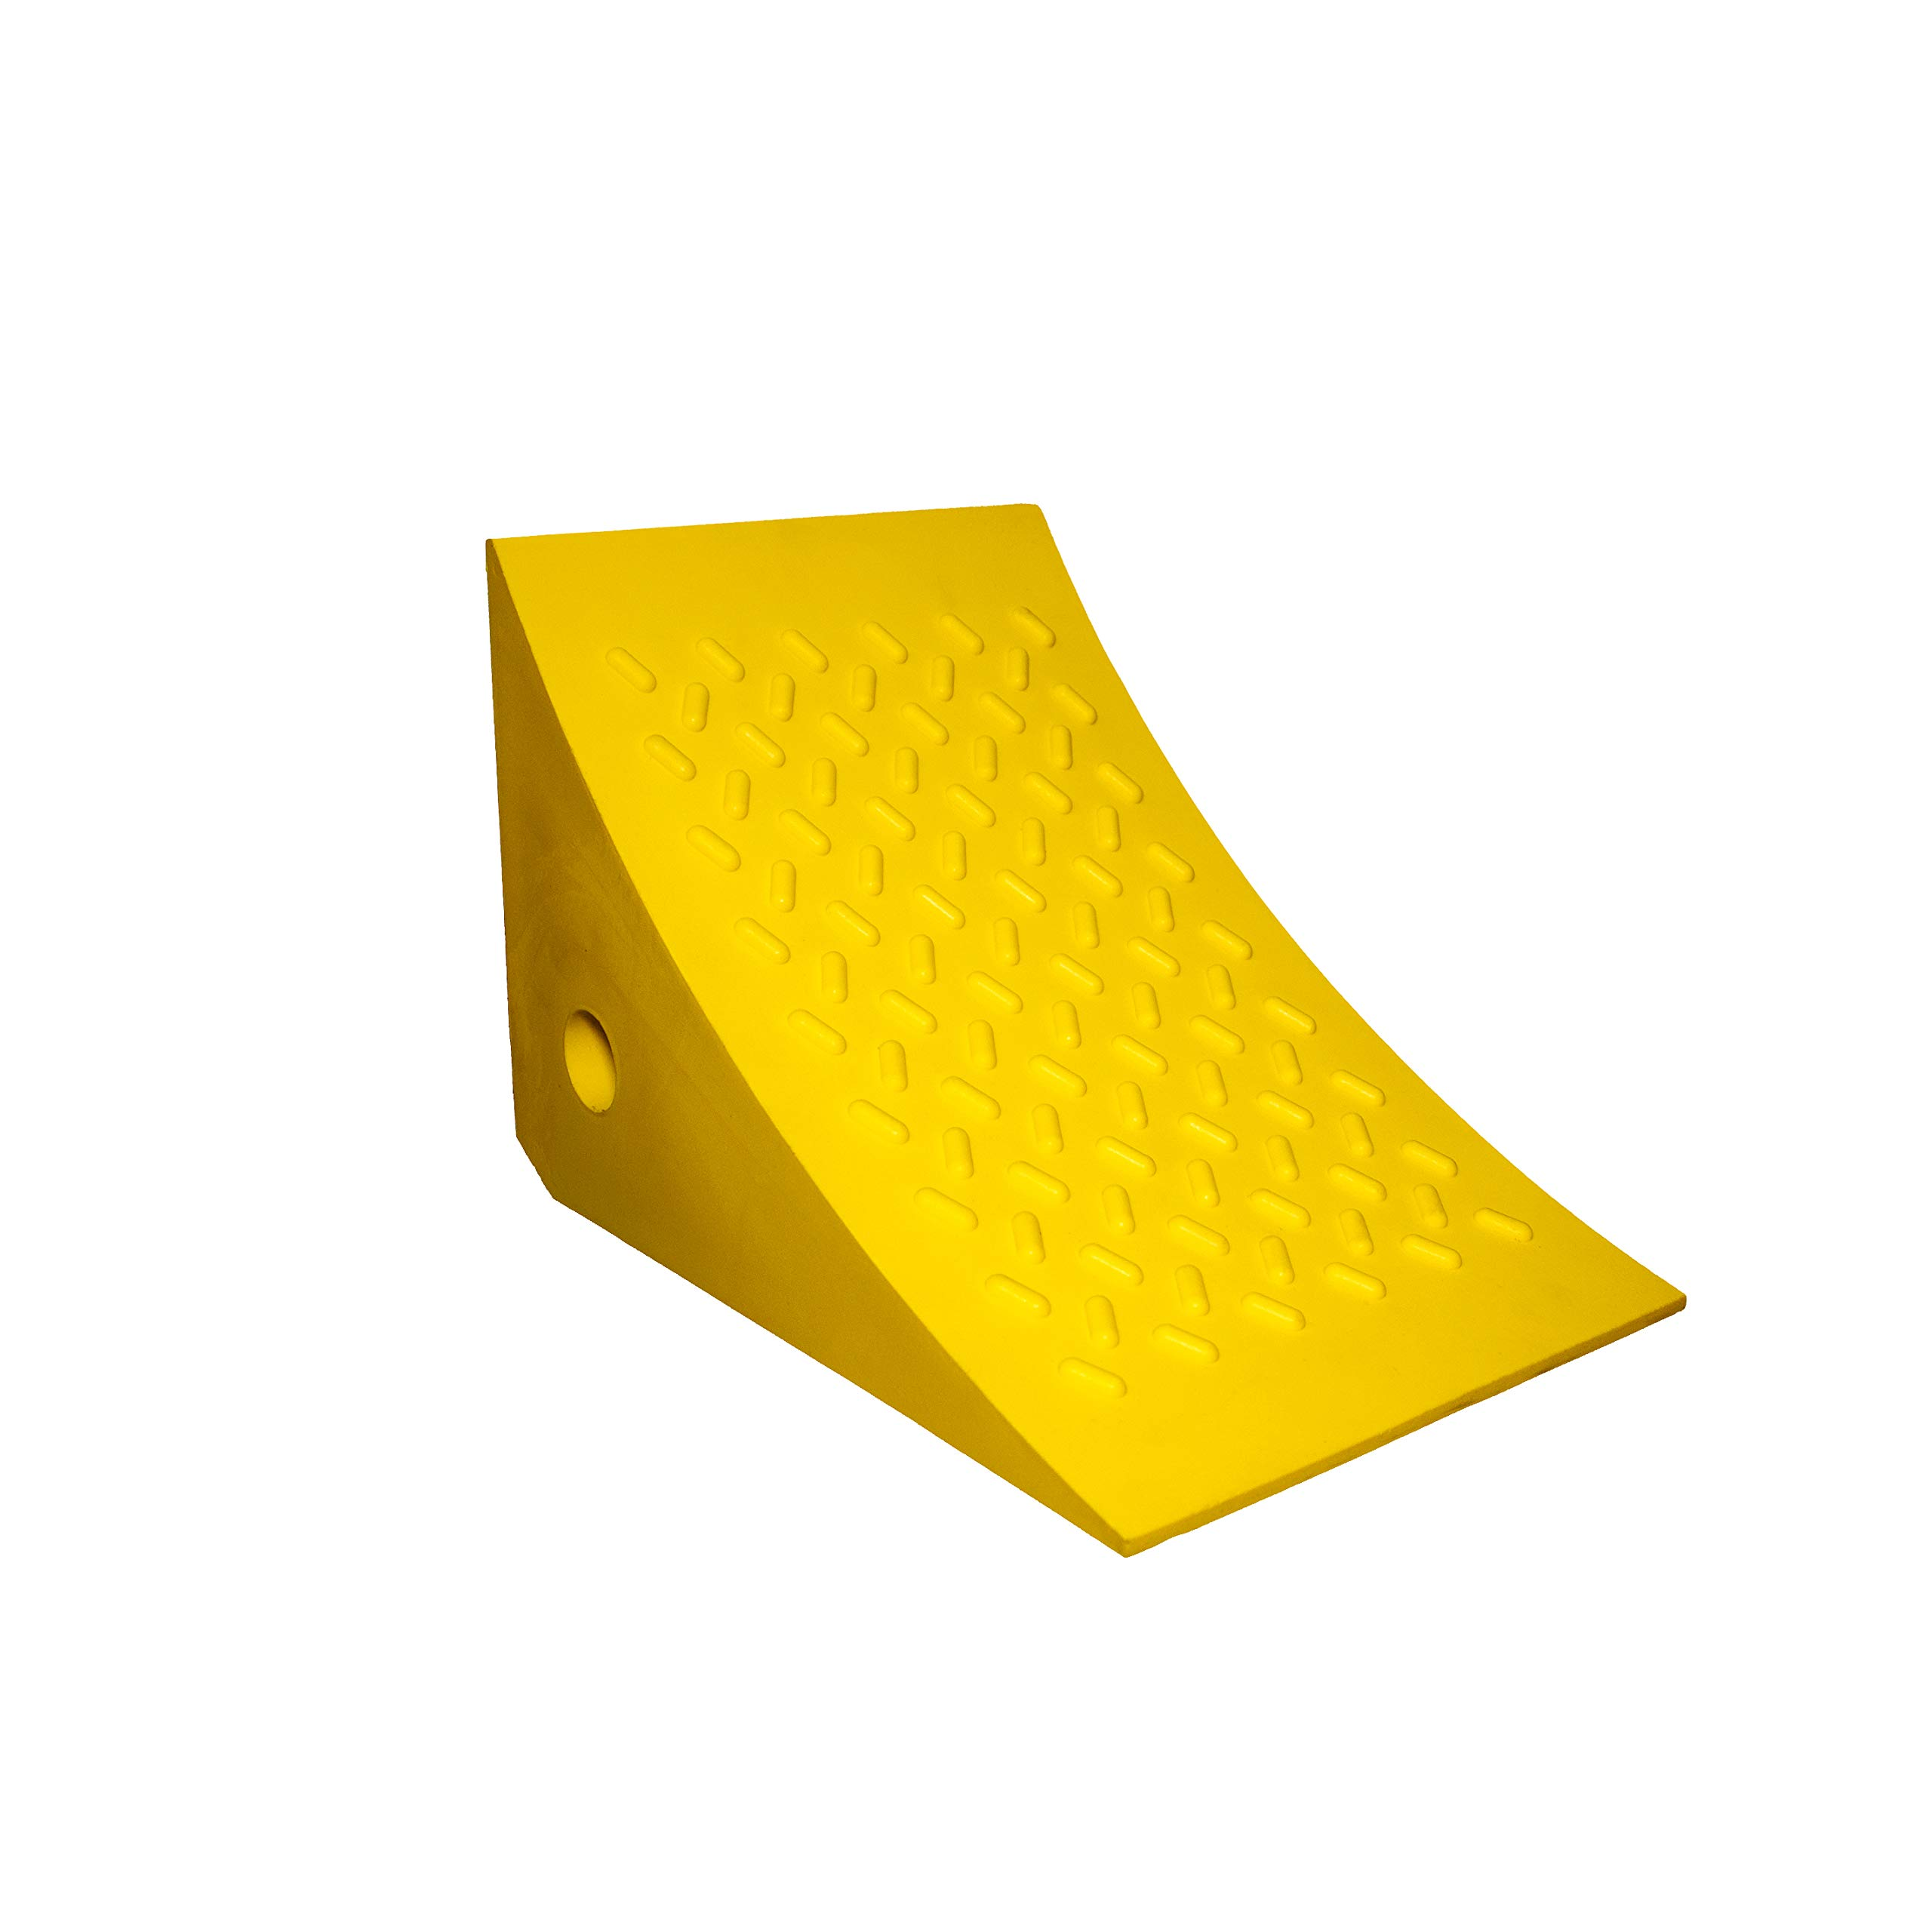 Esco 12592 Safety Yellow Pro Series Wheel Chock, Commercial Trucks and Tractors